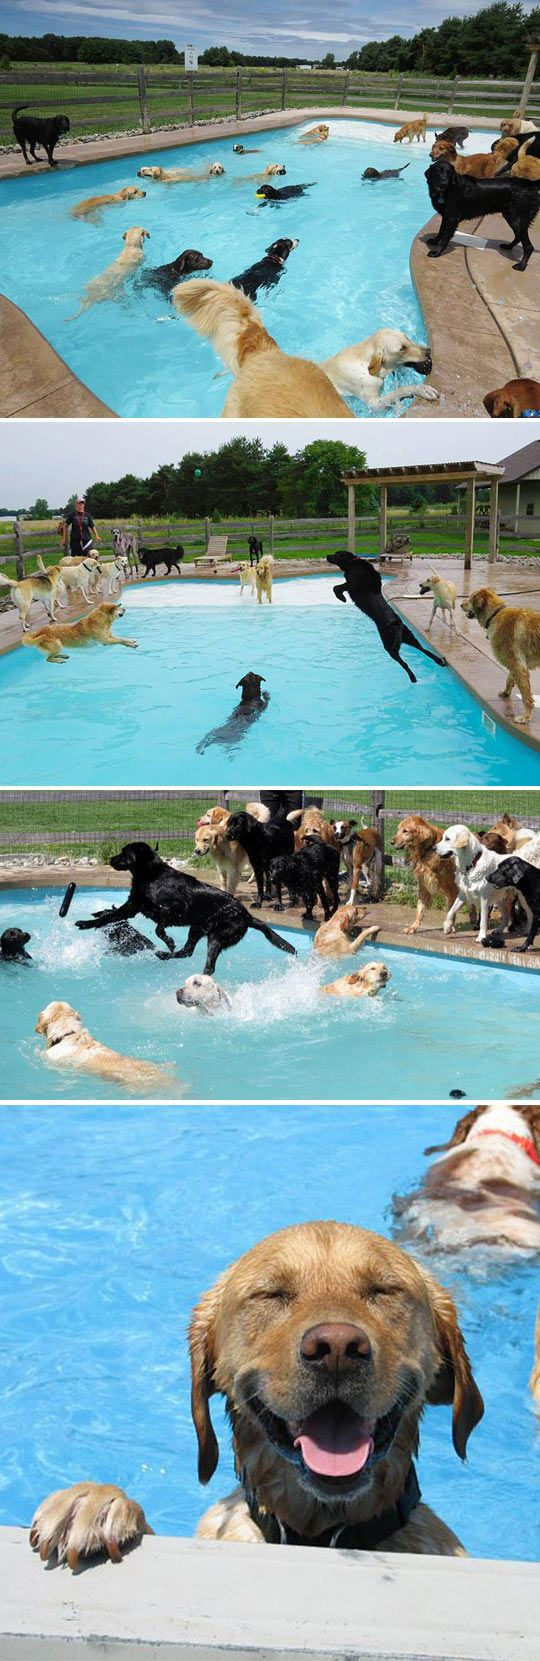 Doggy pool party just might be the happiest thing in the world!